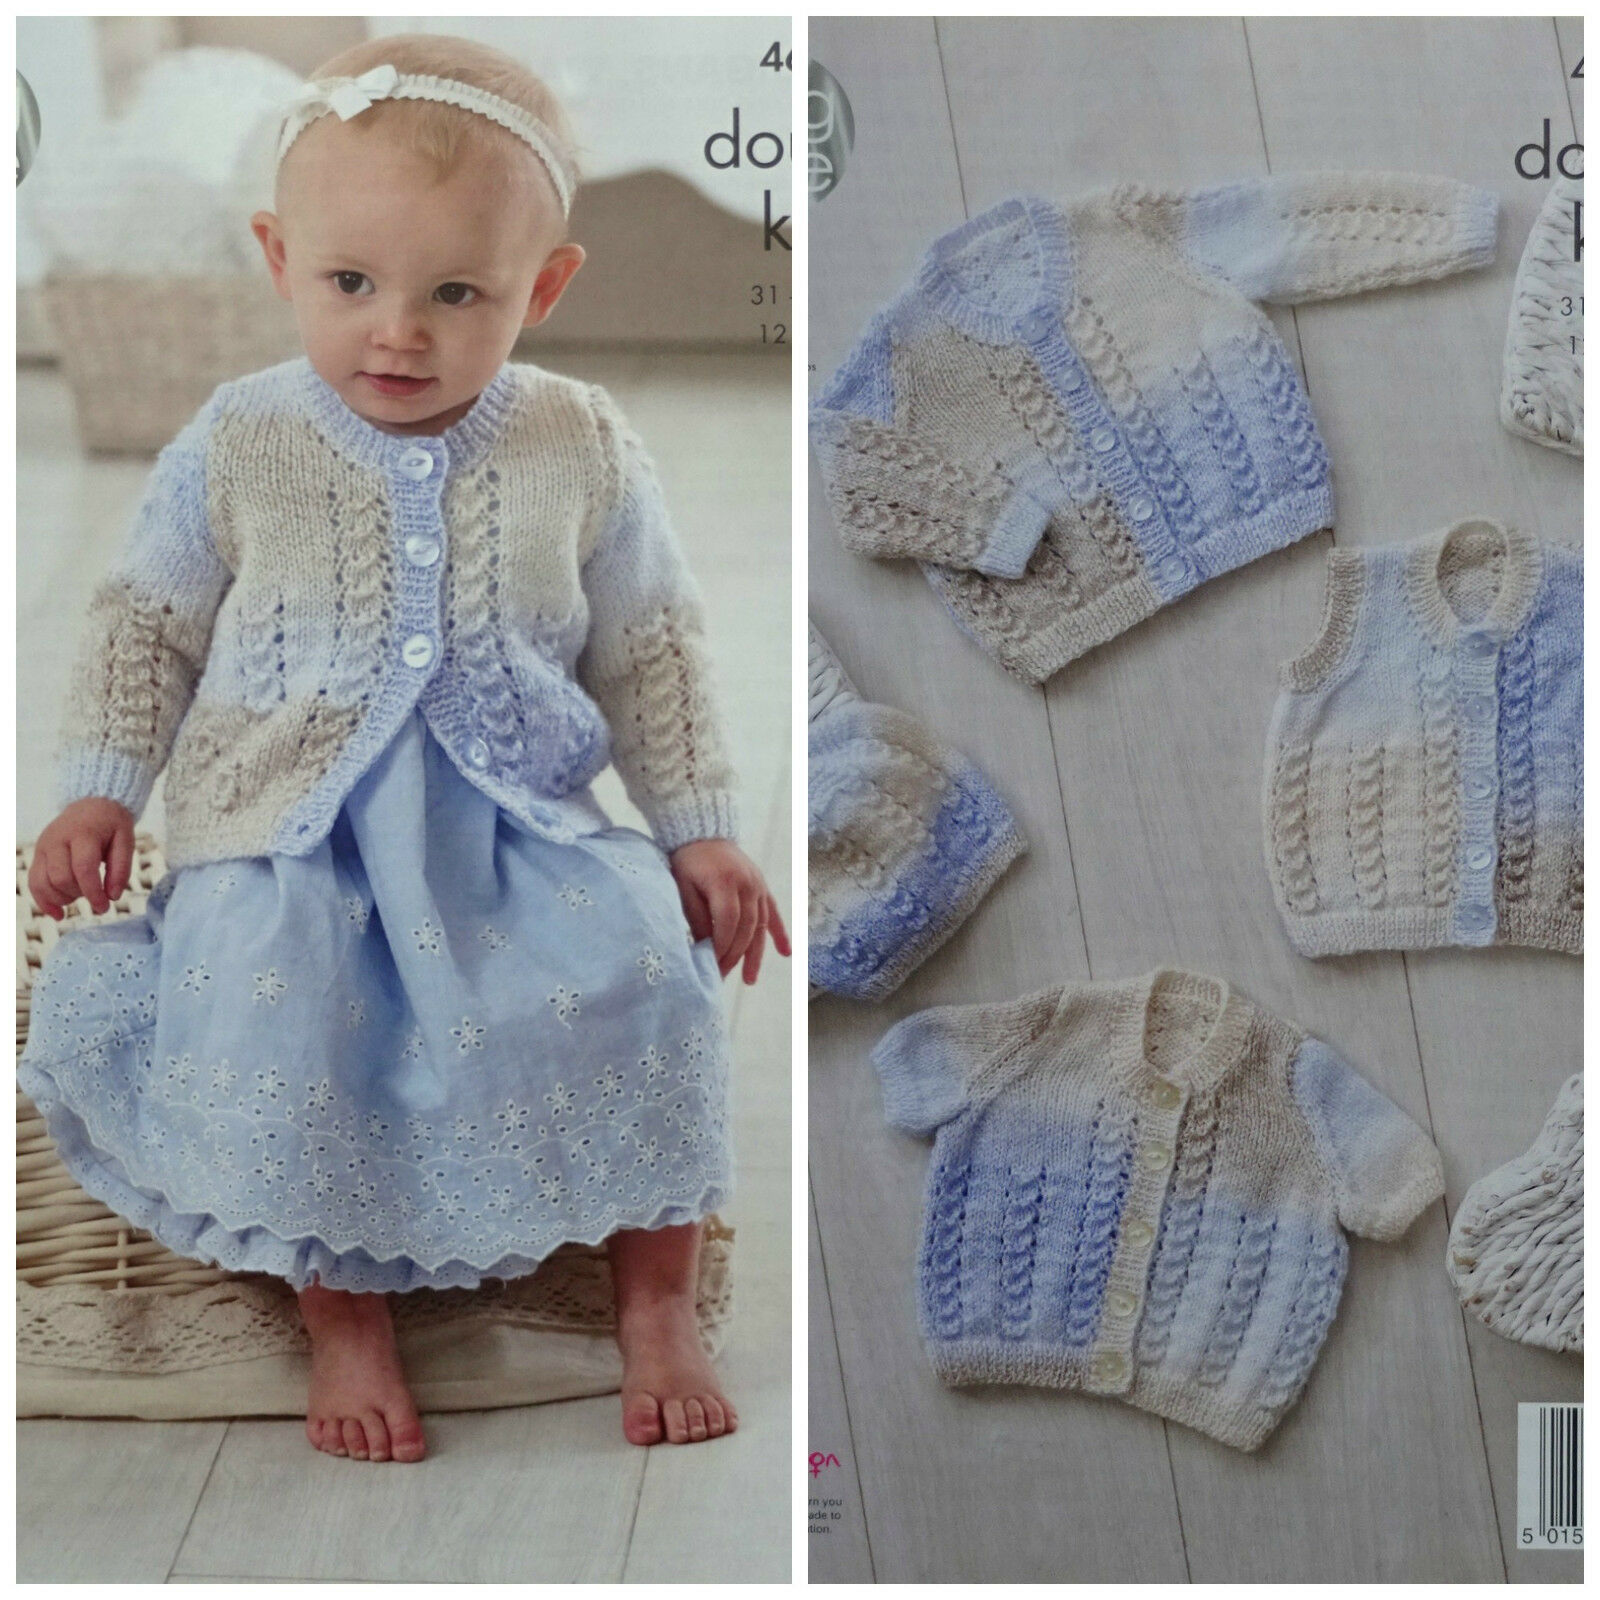 Knitting Patterns For Babies Waistcoats : KNITTING PATTERN Baby Lace Cardigans Waistcoat & Hat DK King Cole 4675   ...